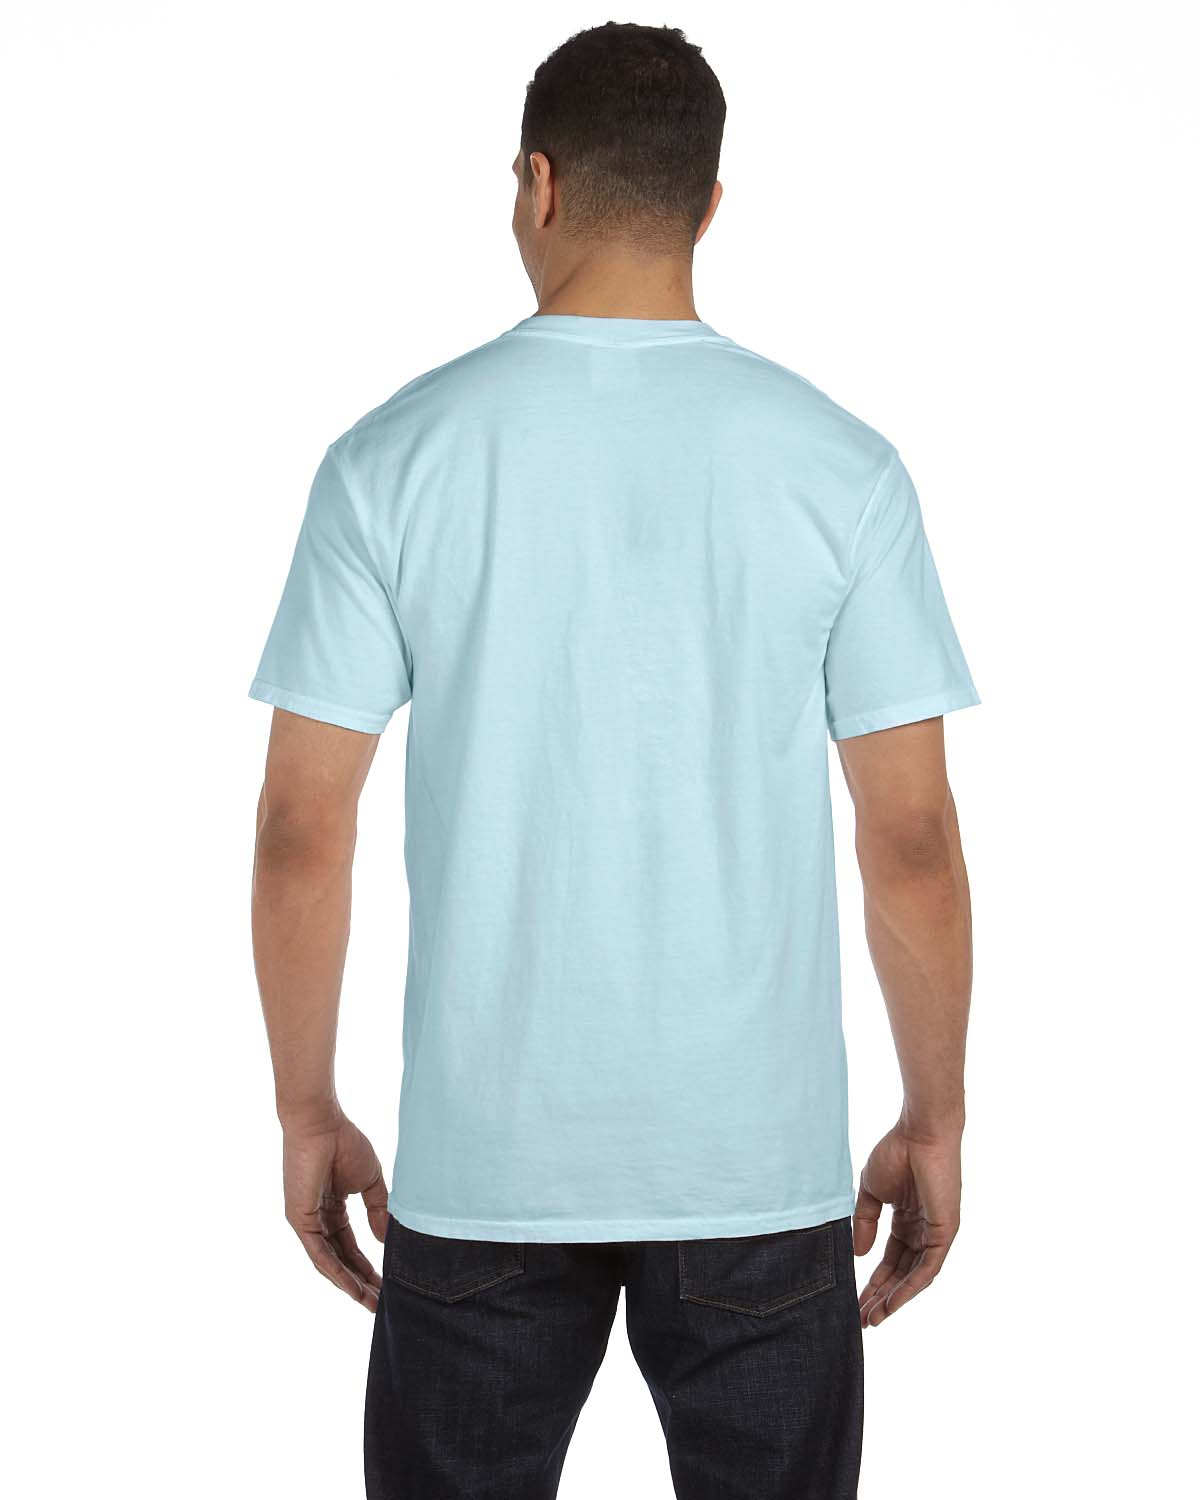 Comfort-Colors-Men-039-s-6-1-oz-Garment-Dyed-Pocket-T-Shirt-6030CC-S-3XL thumbnail 25